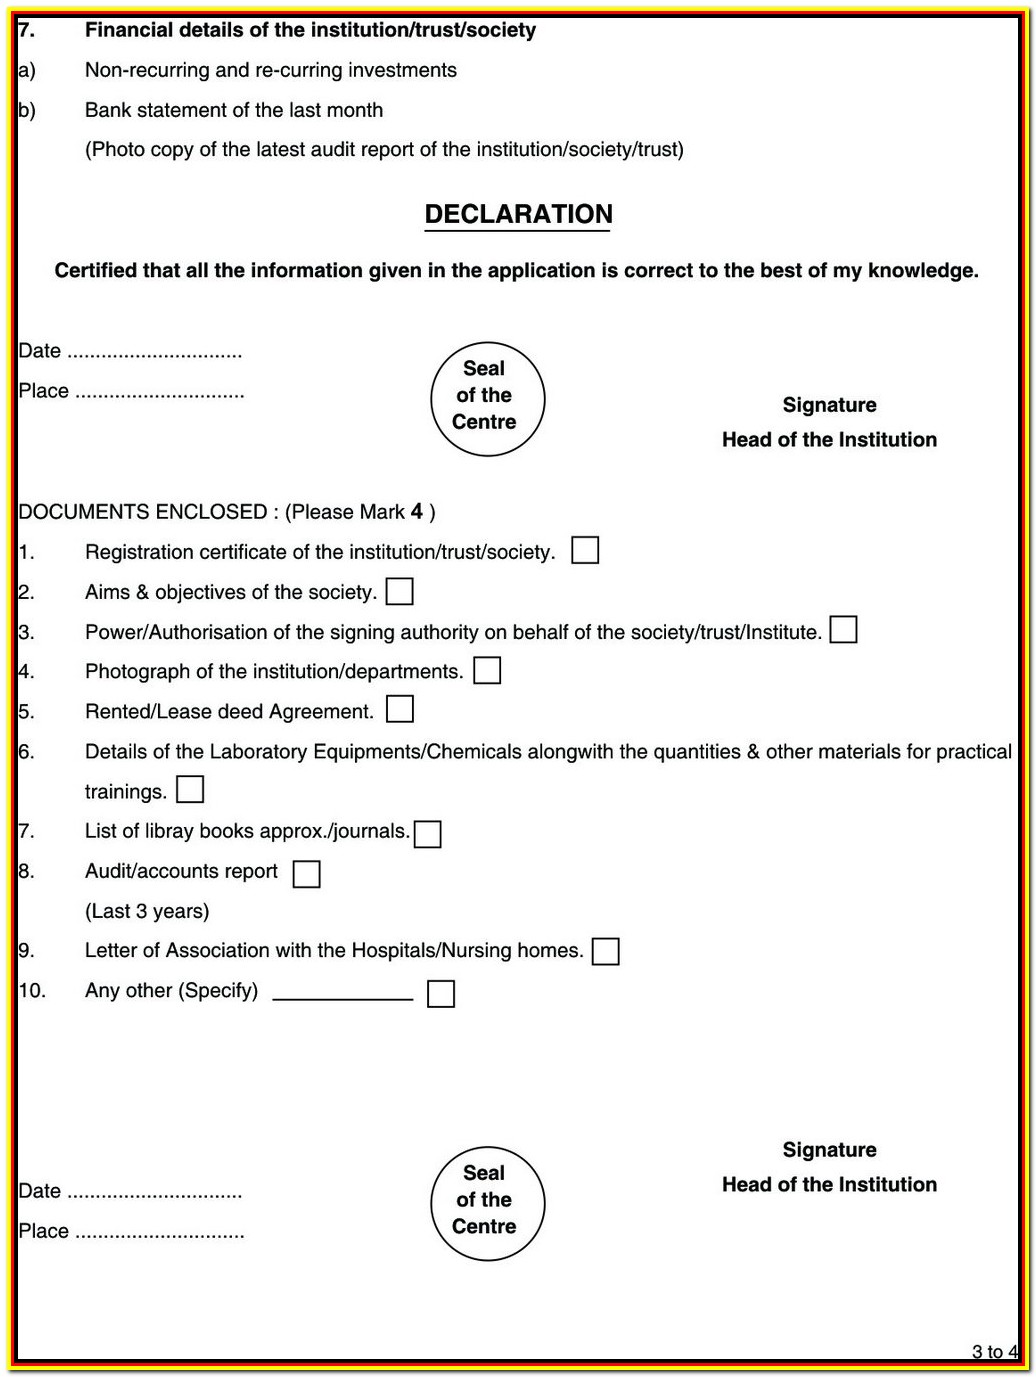 Nurse Aide Registry Renewal Form Massachusetts